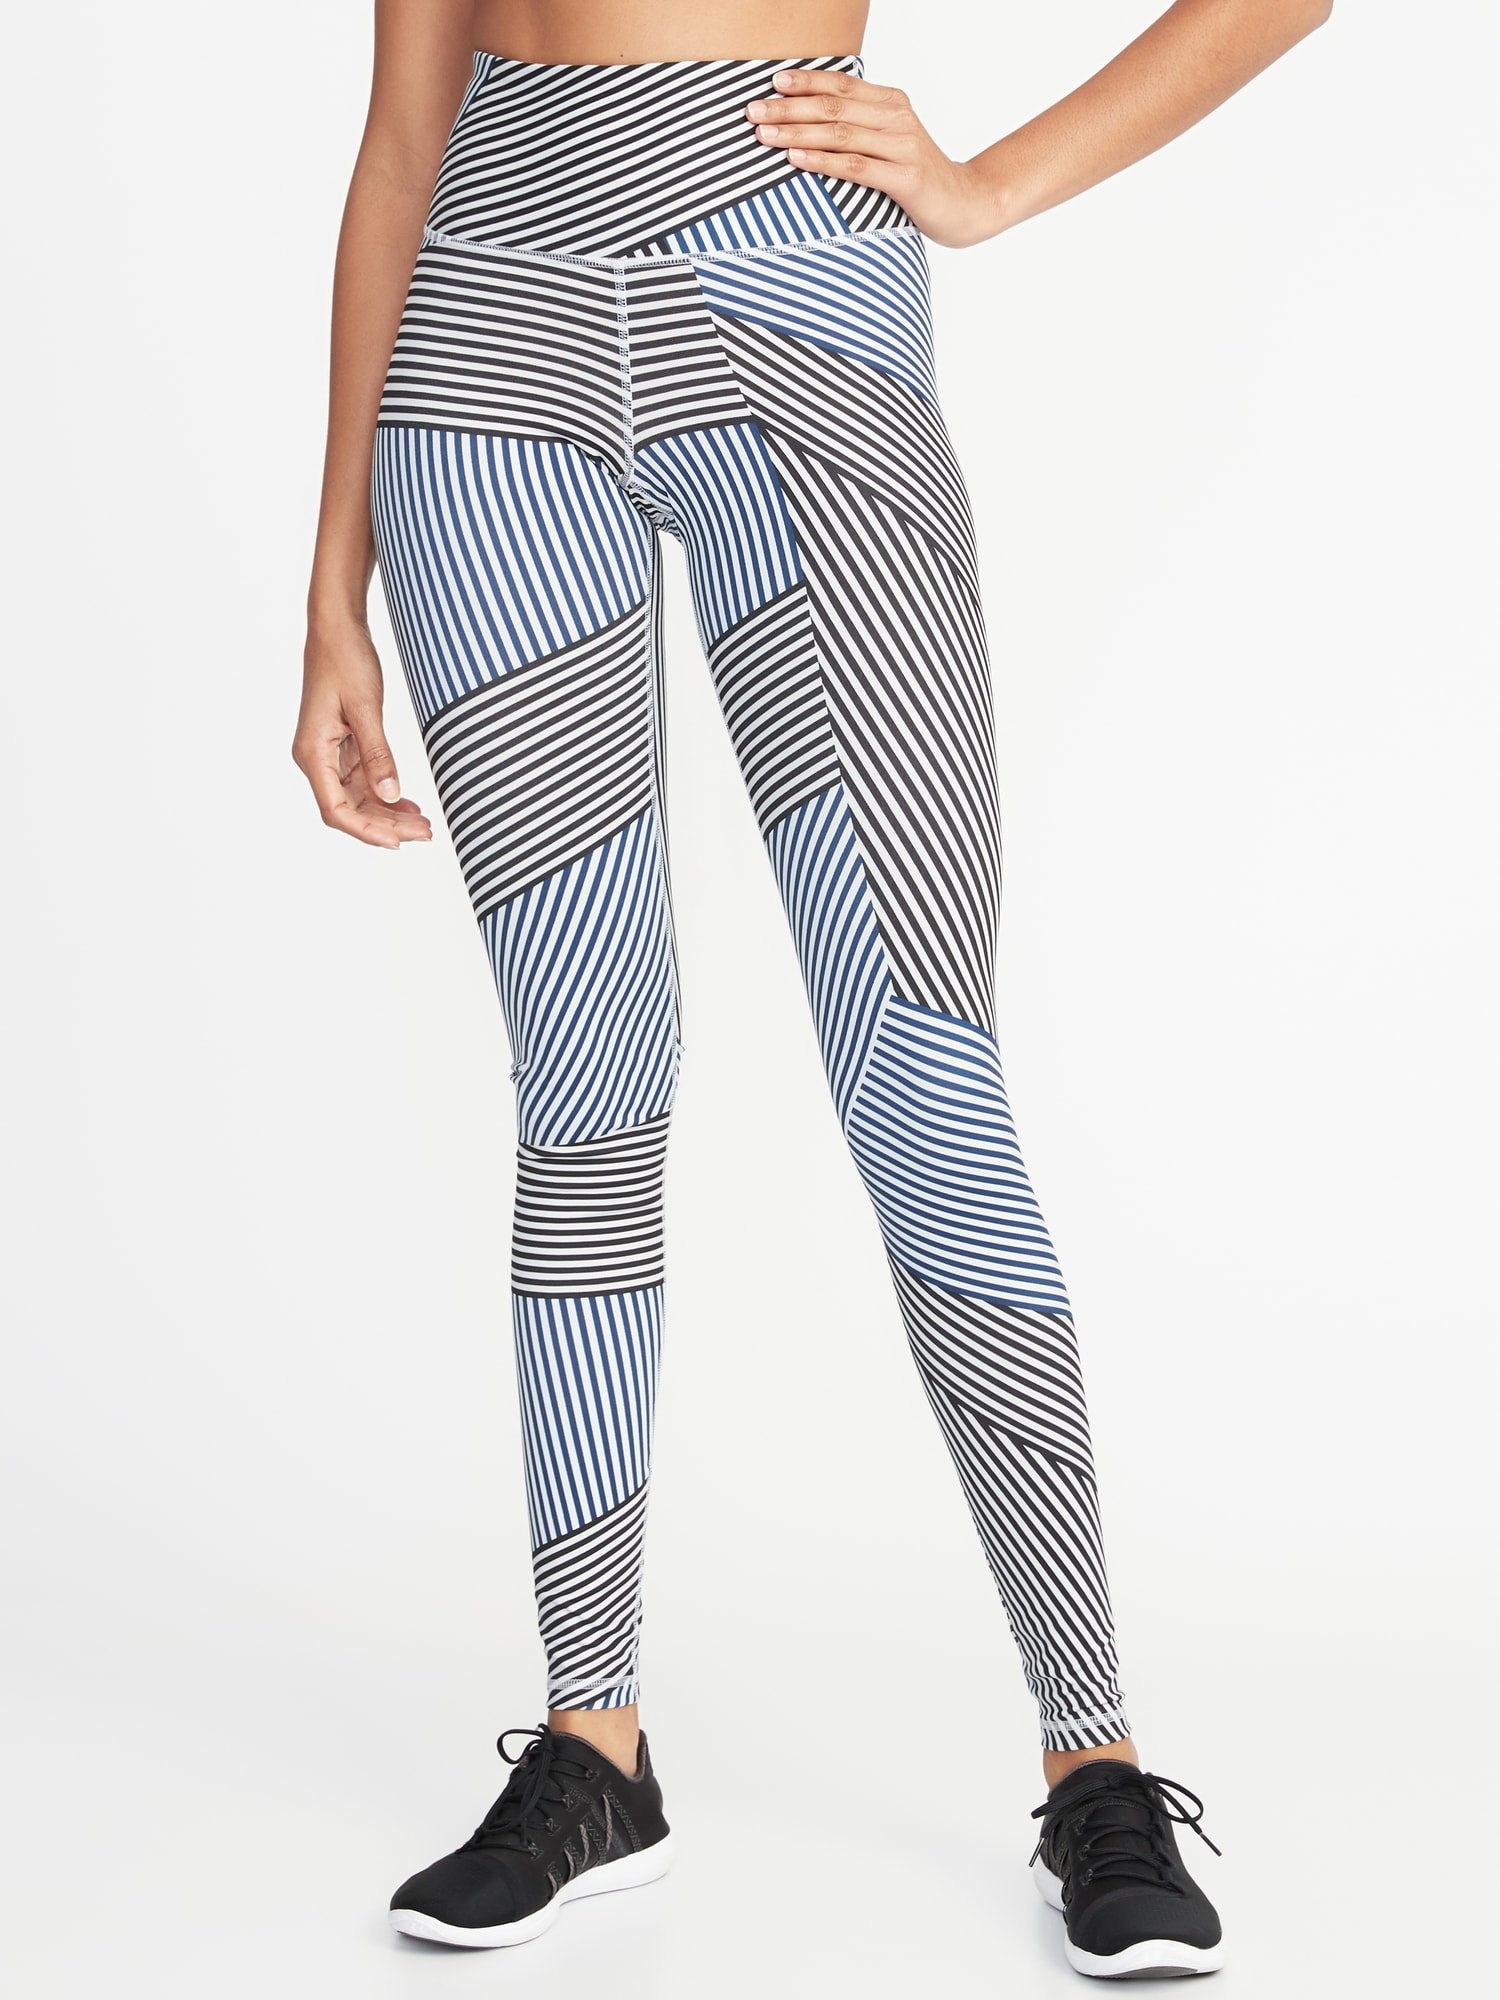 29451fcfb5 High-Rise Printed Elevate Compression Leggings for Women | Old Navy